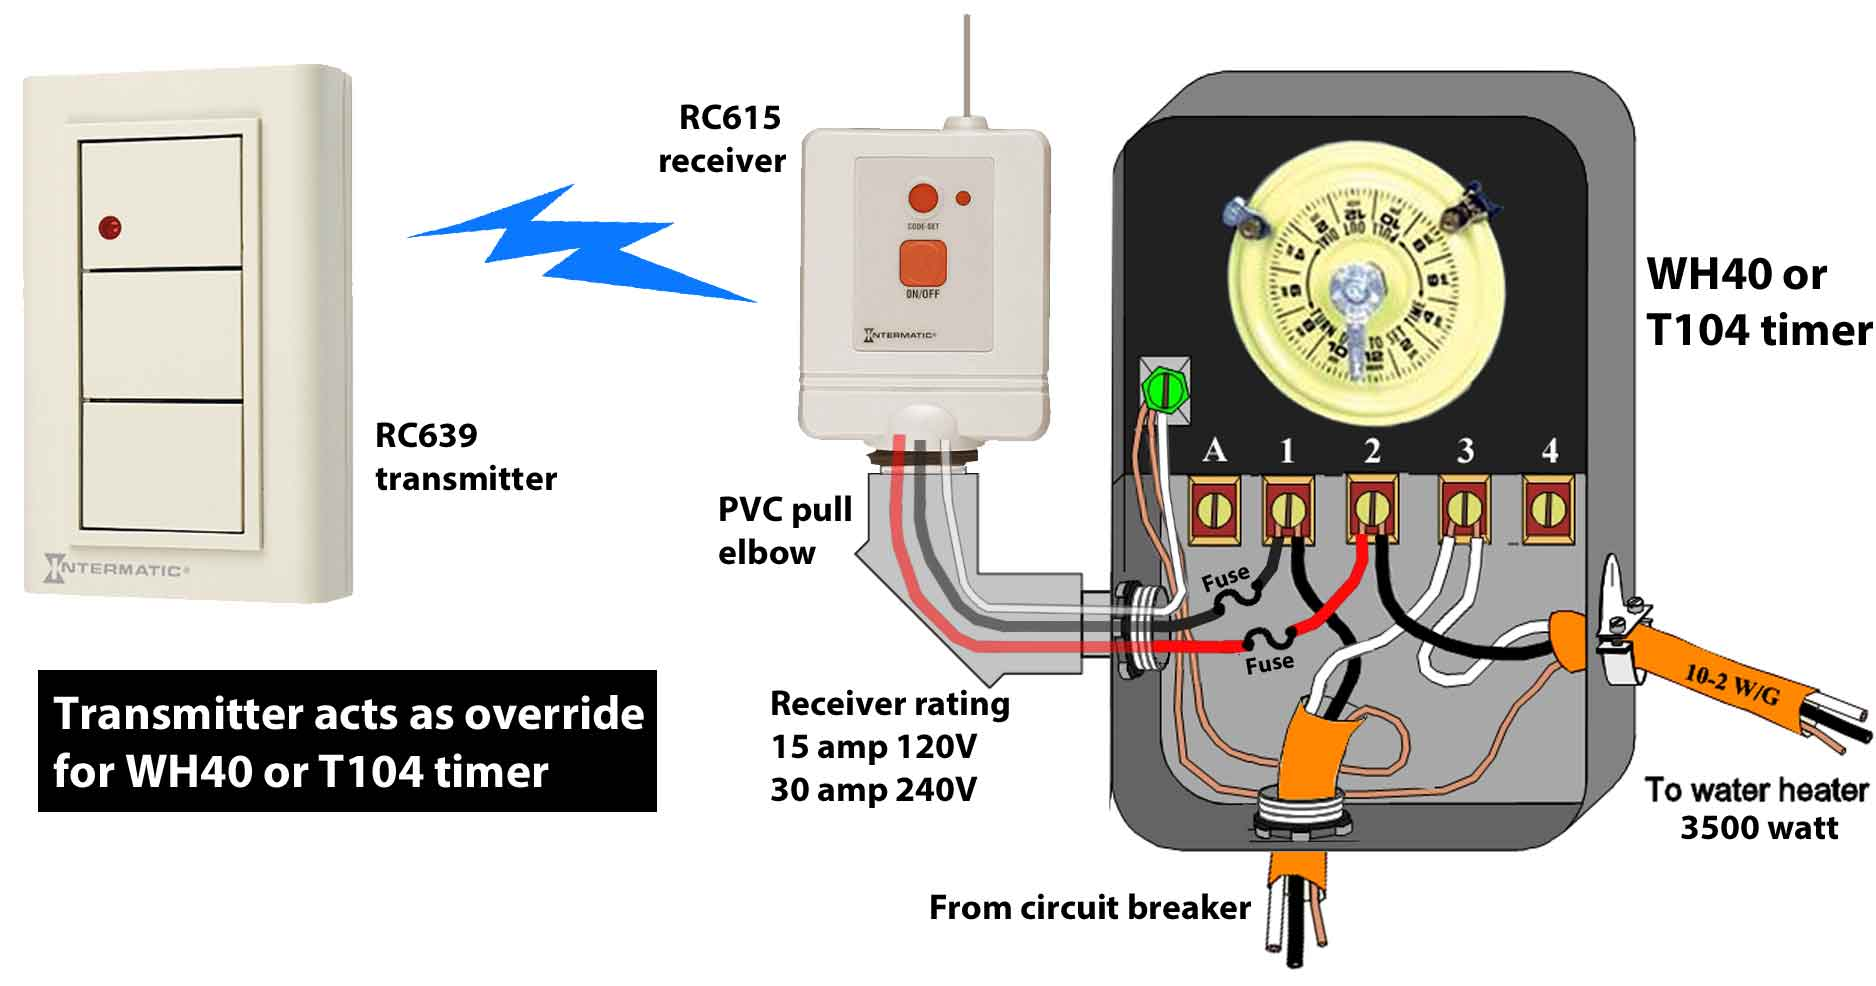 Intermatic remote RC control how to wire wh40 water heater timer sprinkler timer wiring diagram at soozxer.org